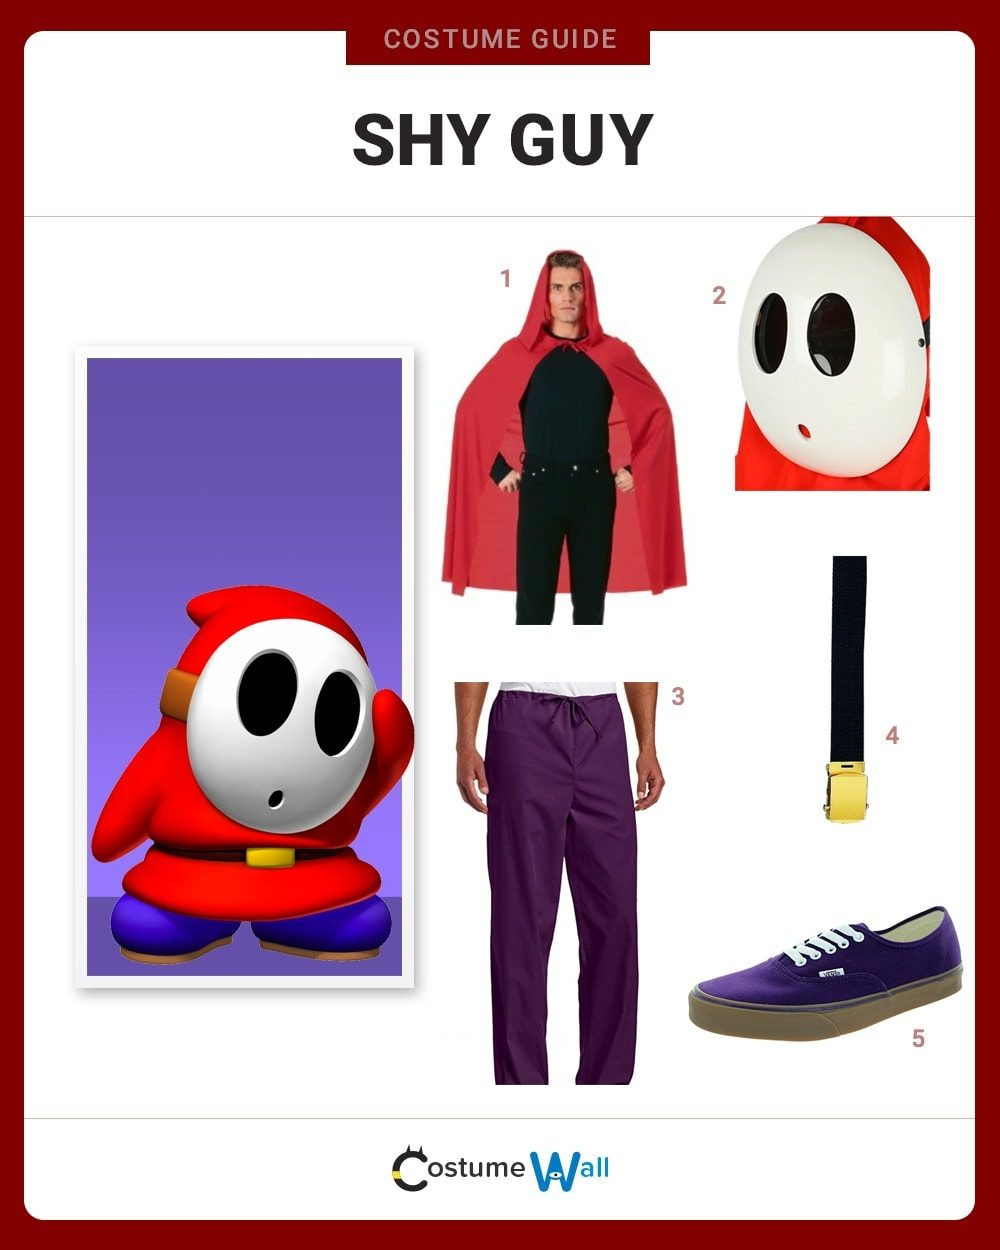 Shy Guy Costume Guide